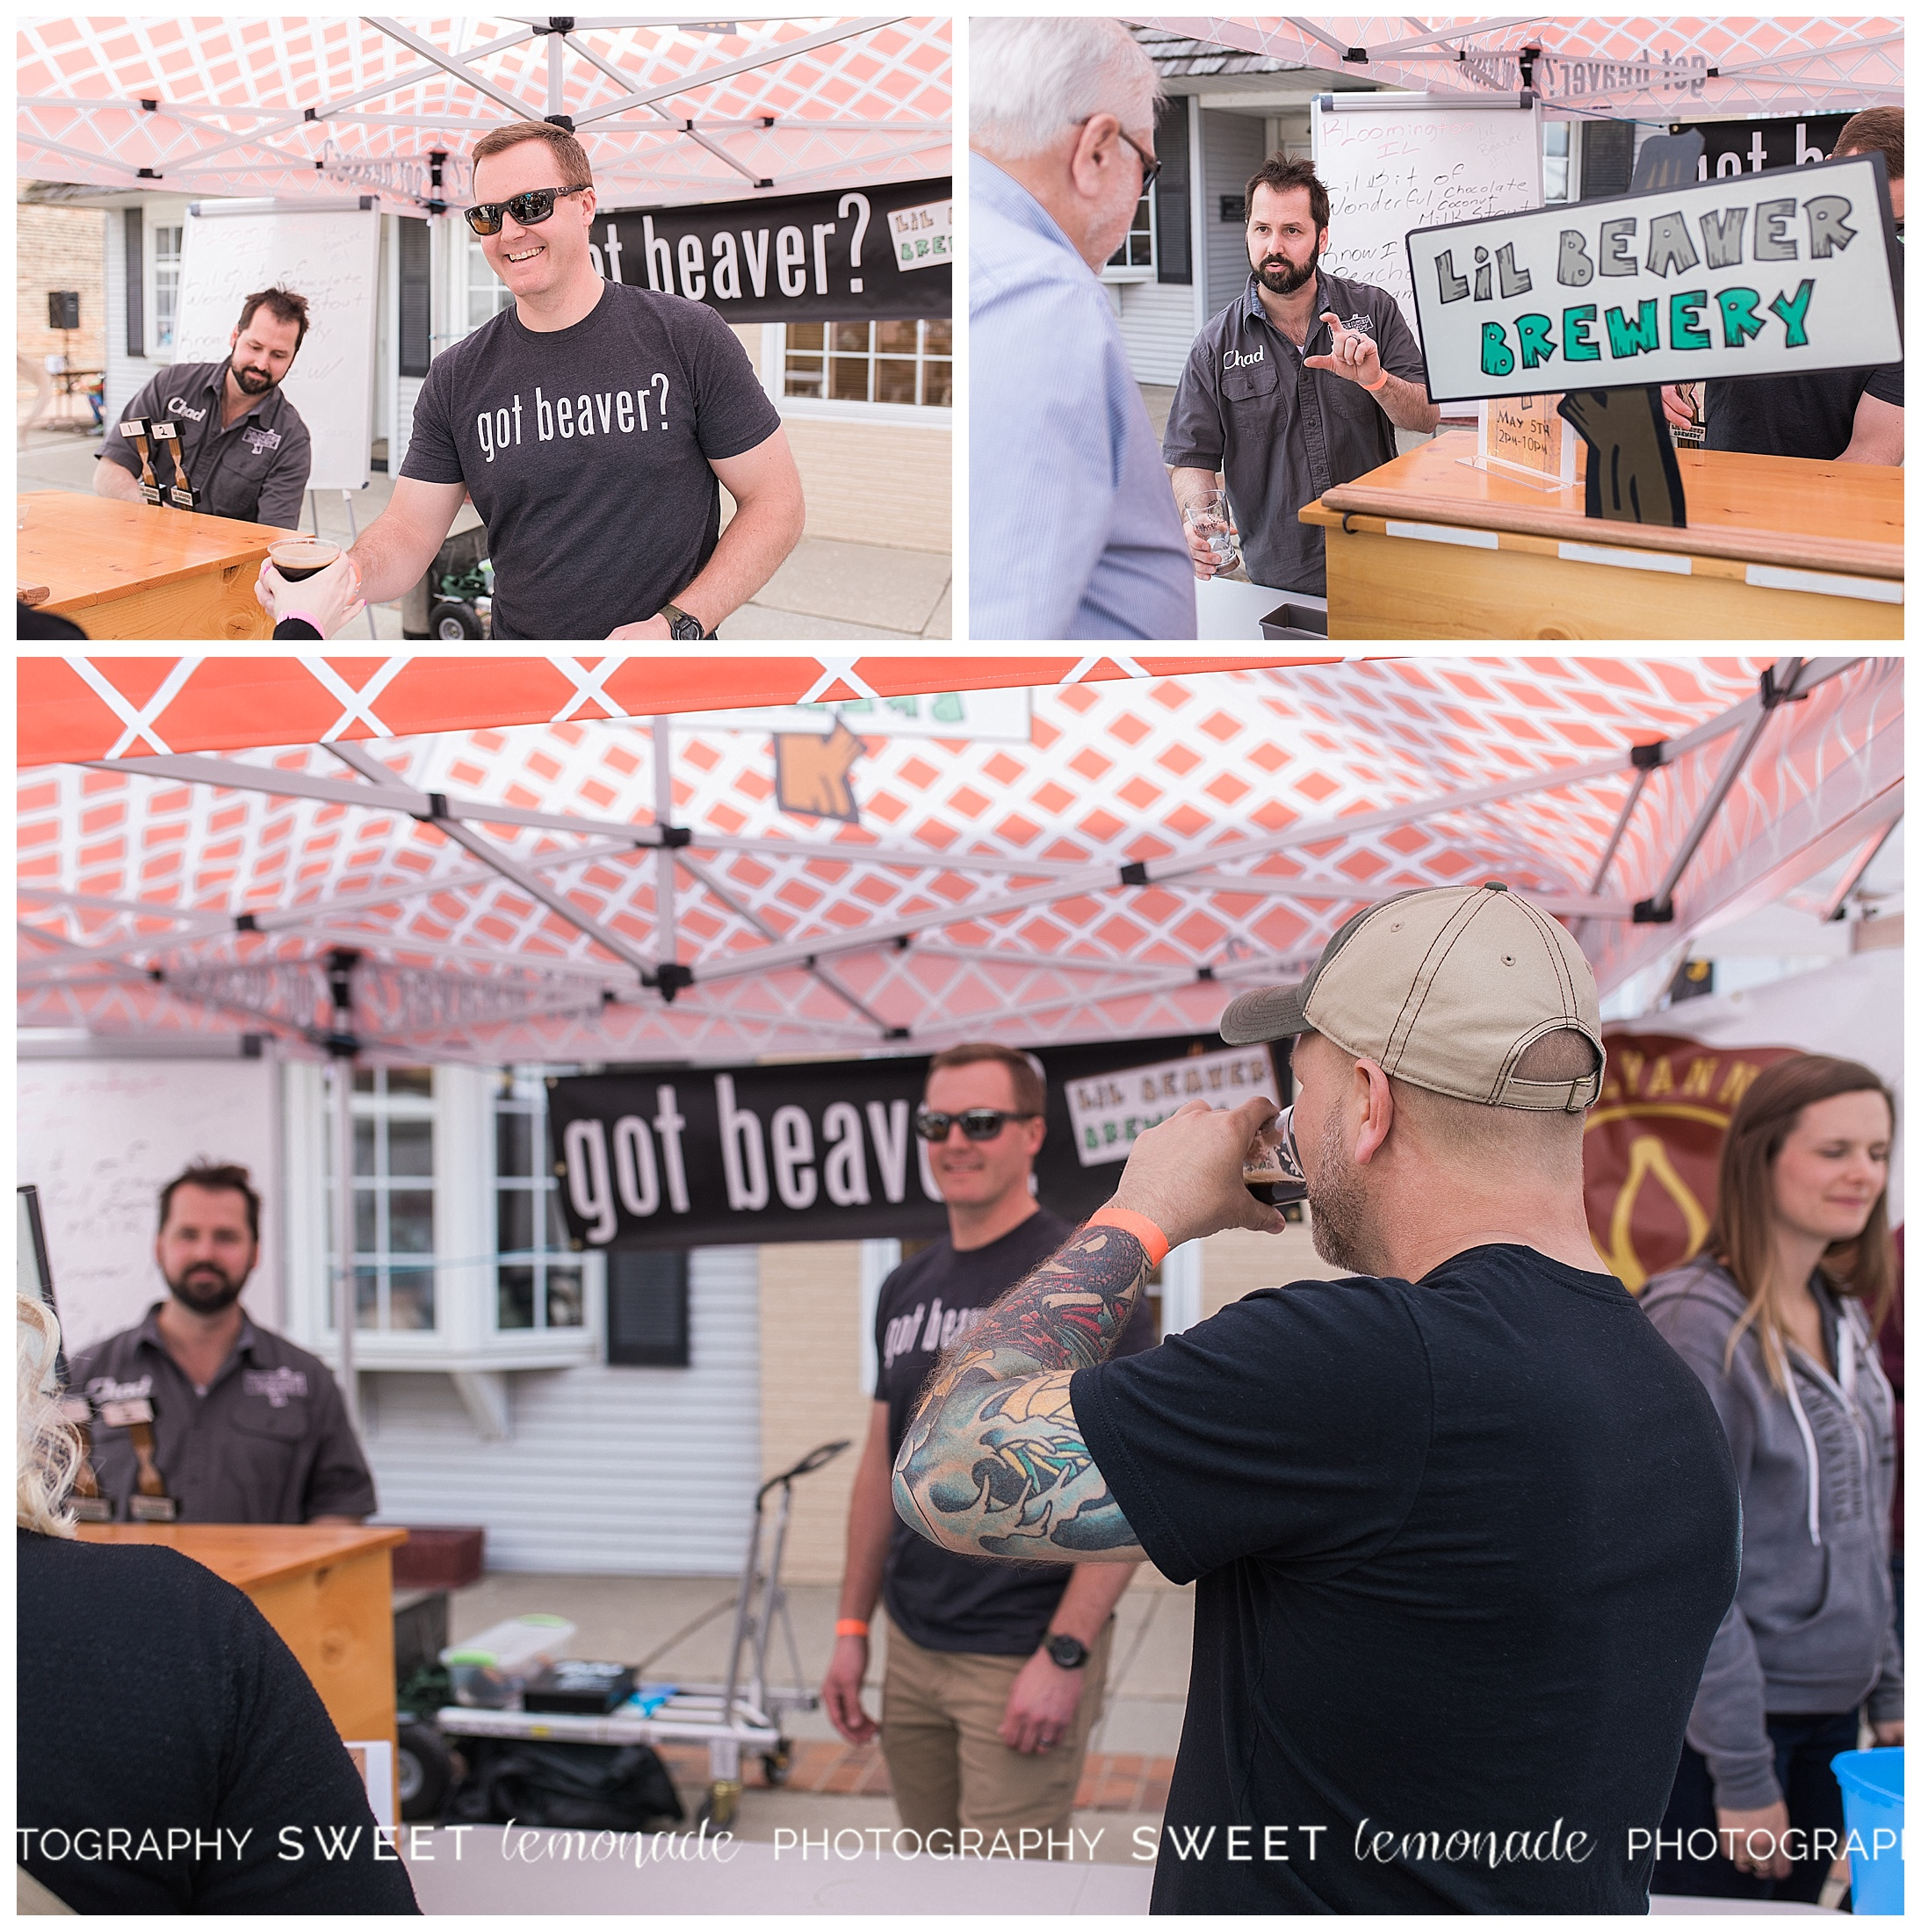 mahomet-illinois-spring-craft-beer-festival-jtwalkers-champaign-county-little-beaver-brewing-company_2035.jpg